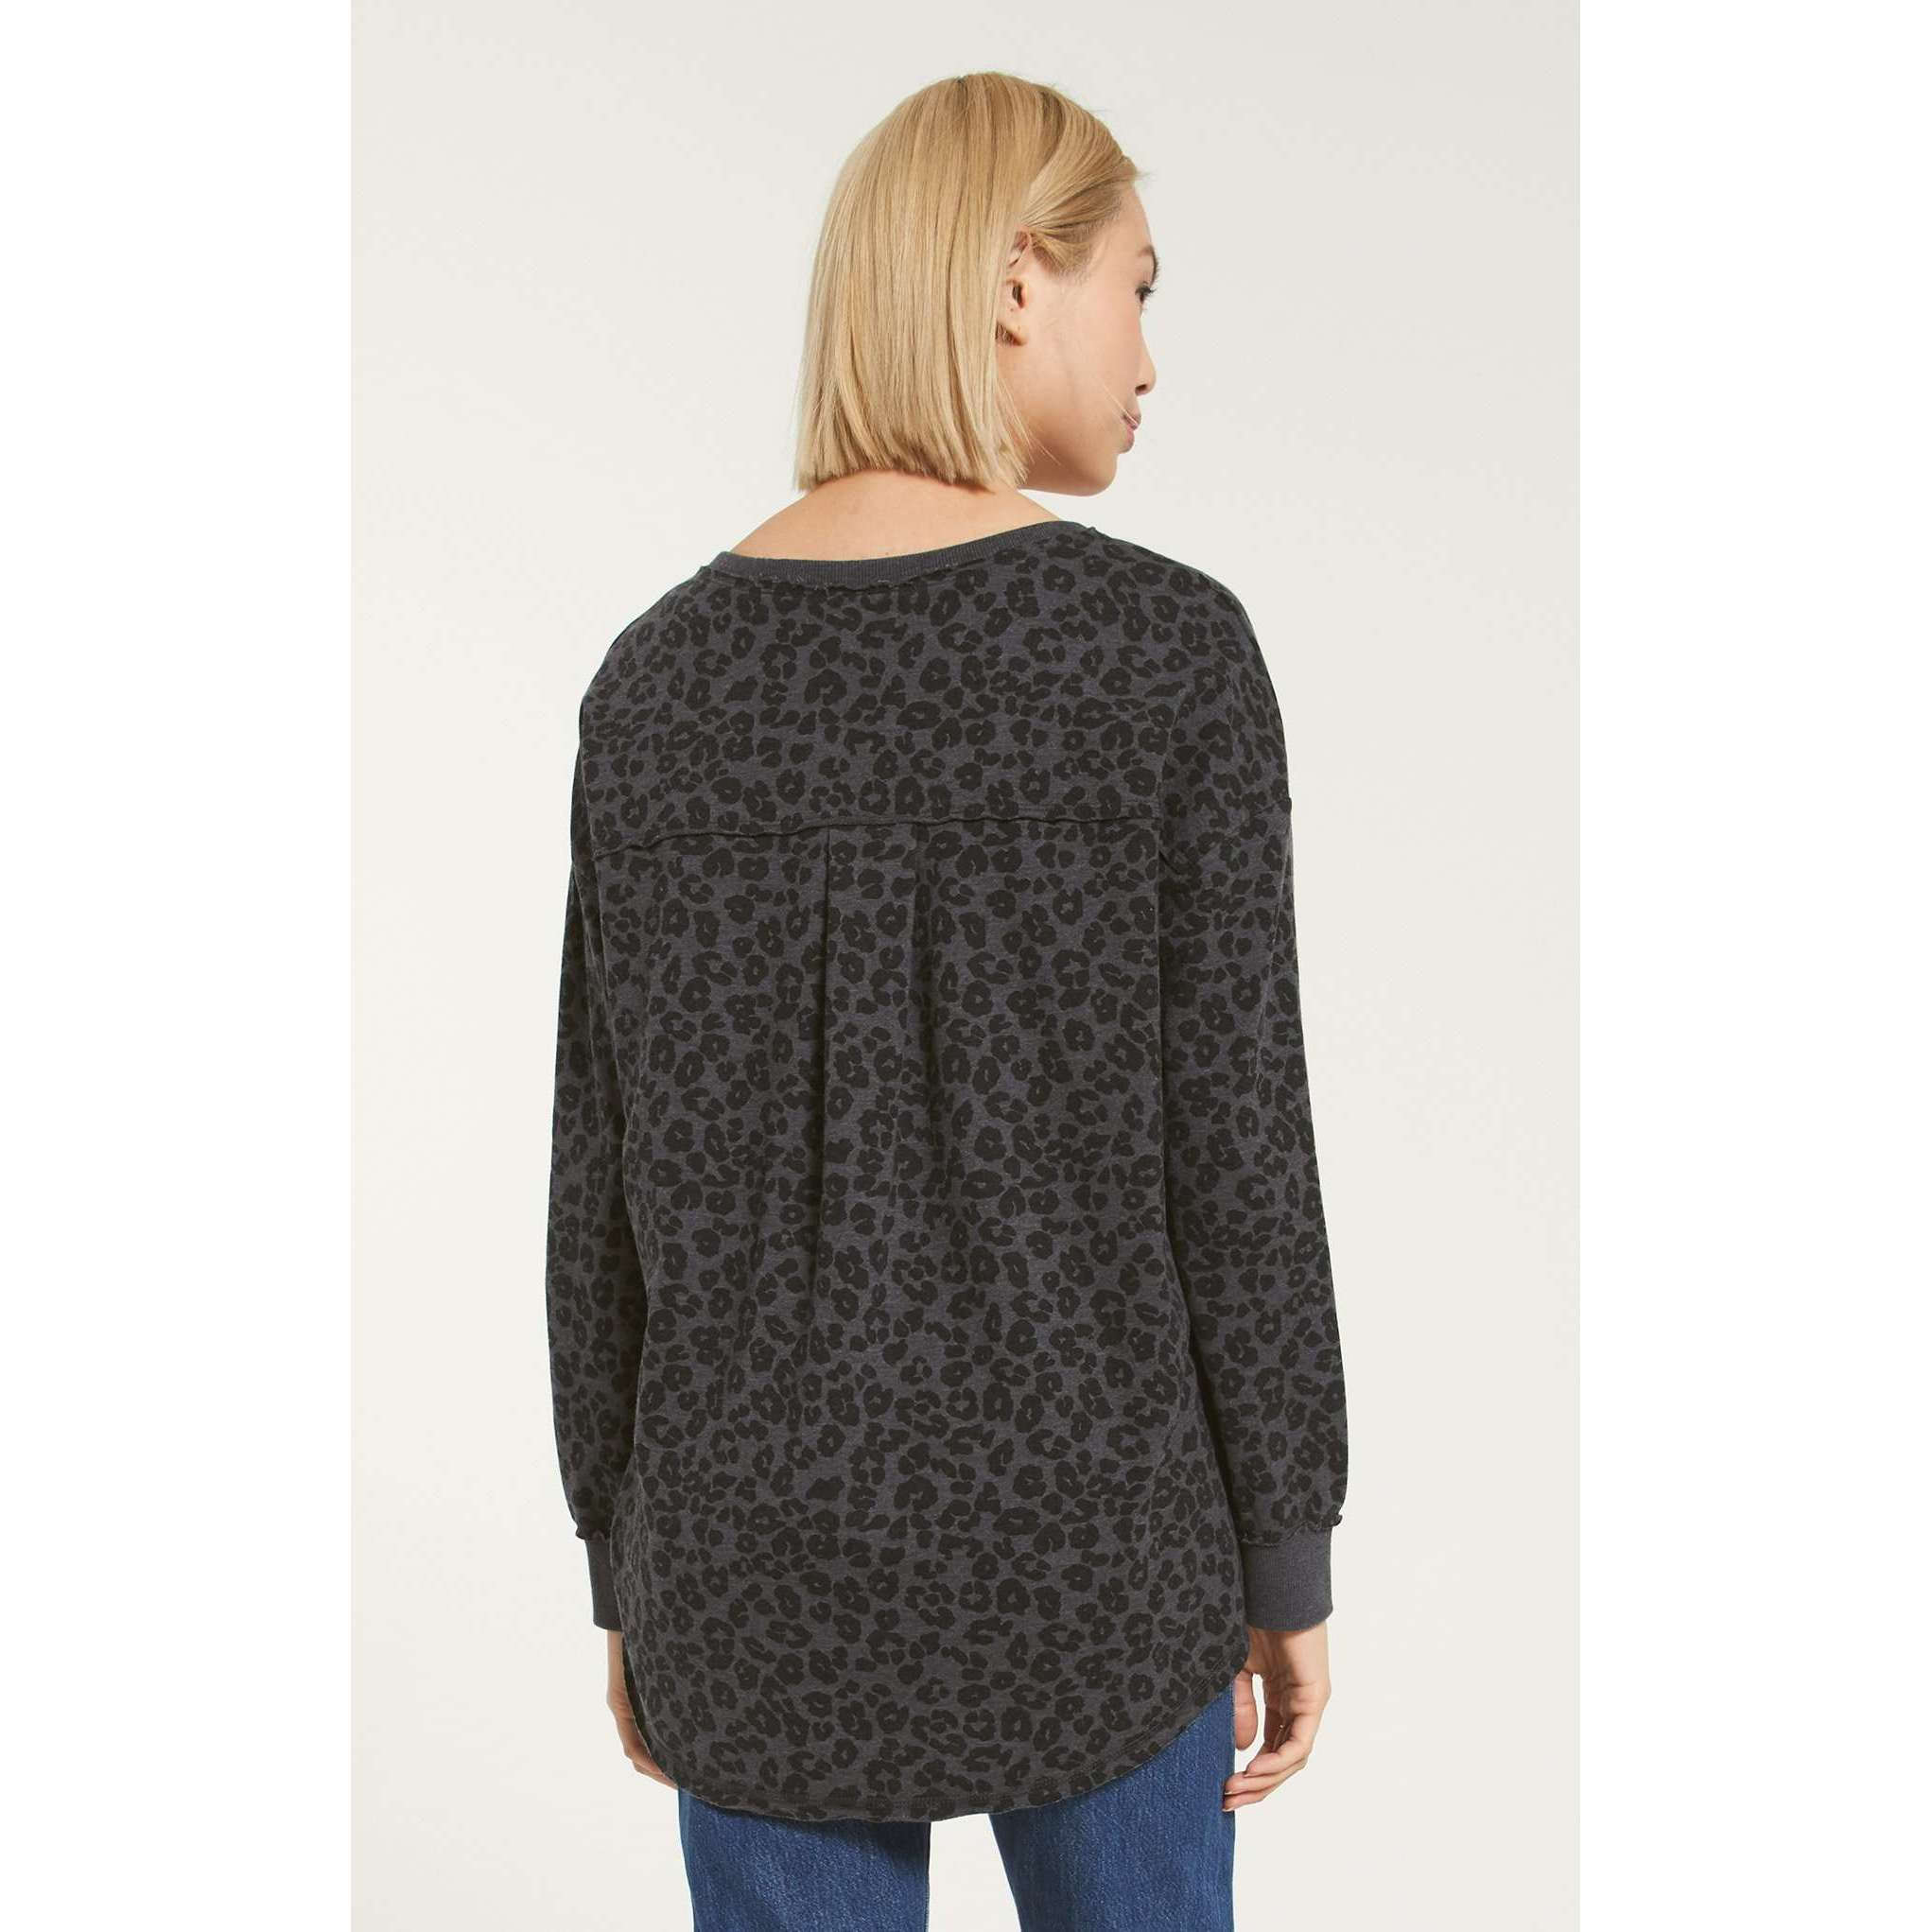 8.28 Boutique:Z-Supply,Z-Supply V-Neck Leopard Weekender,Tops